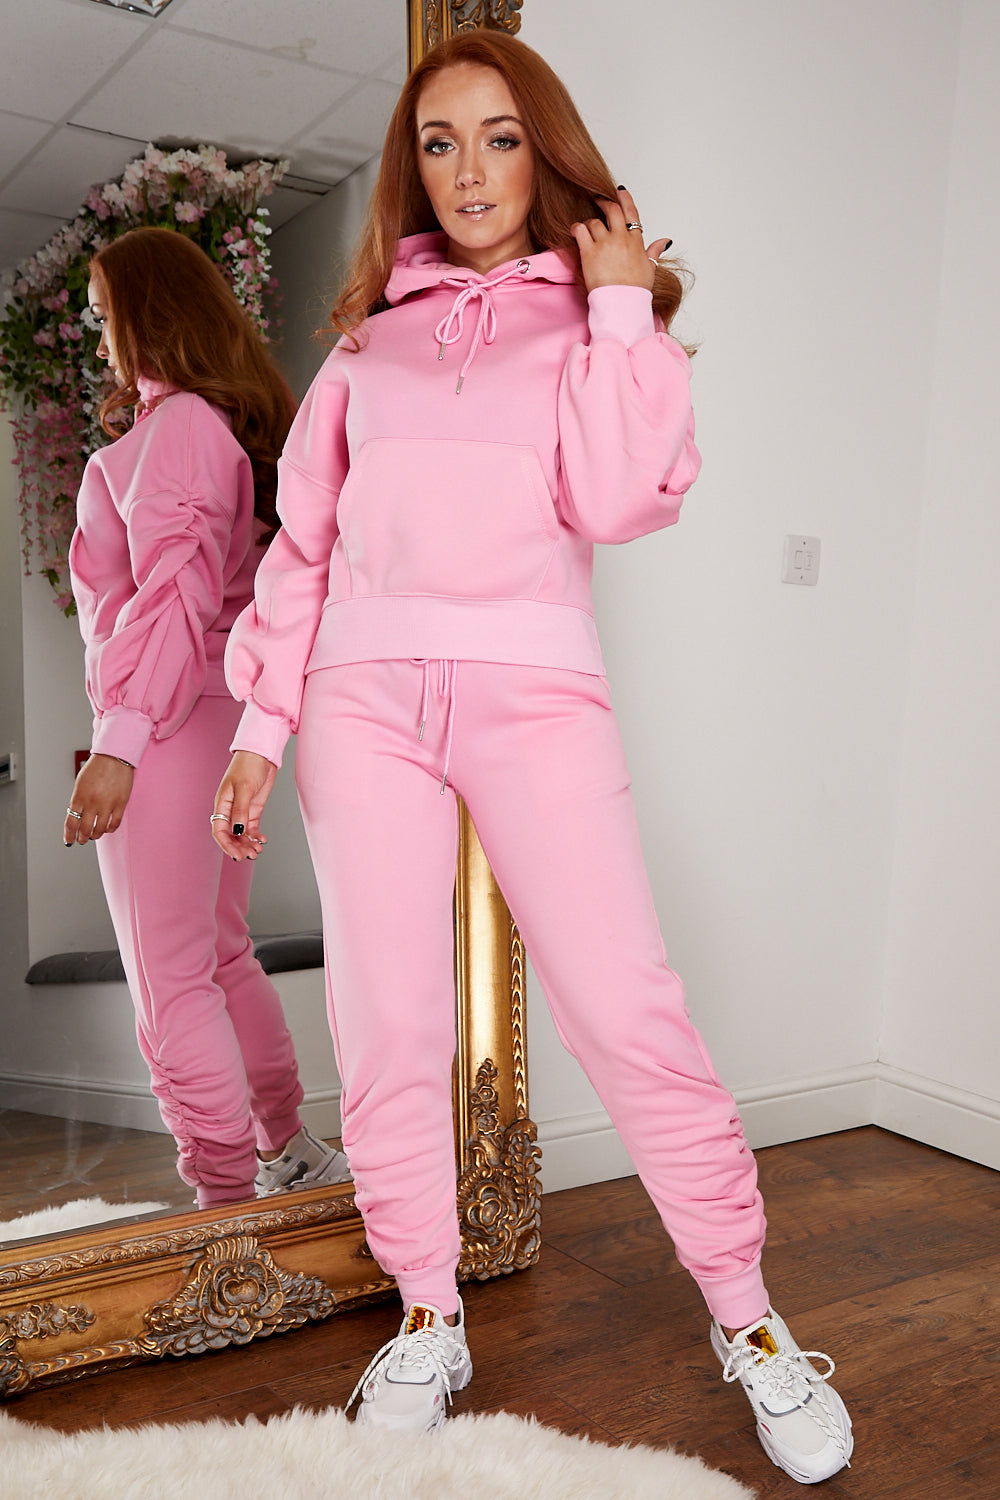 Ruched jog suit BUBBLE GUM PINK